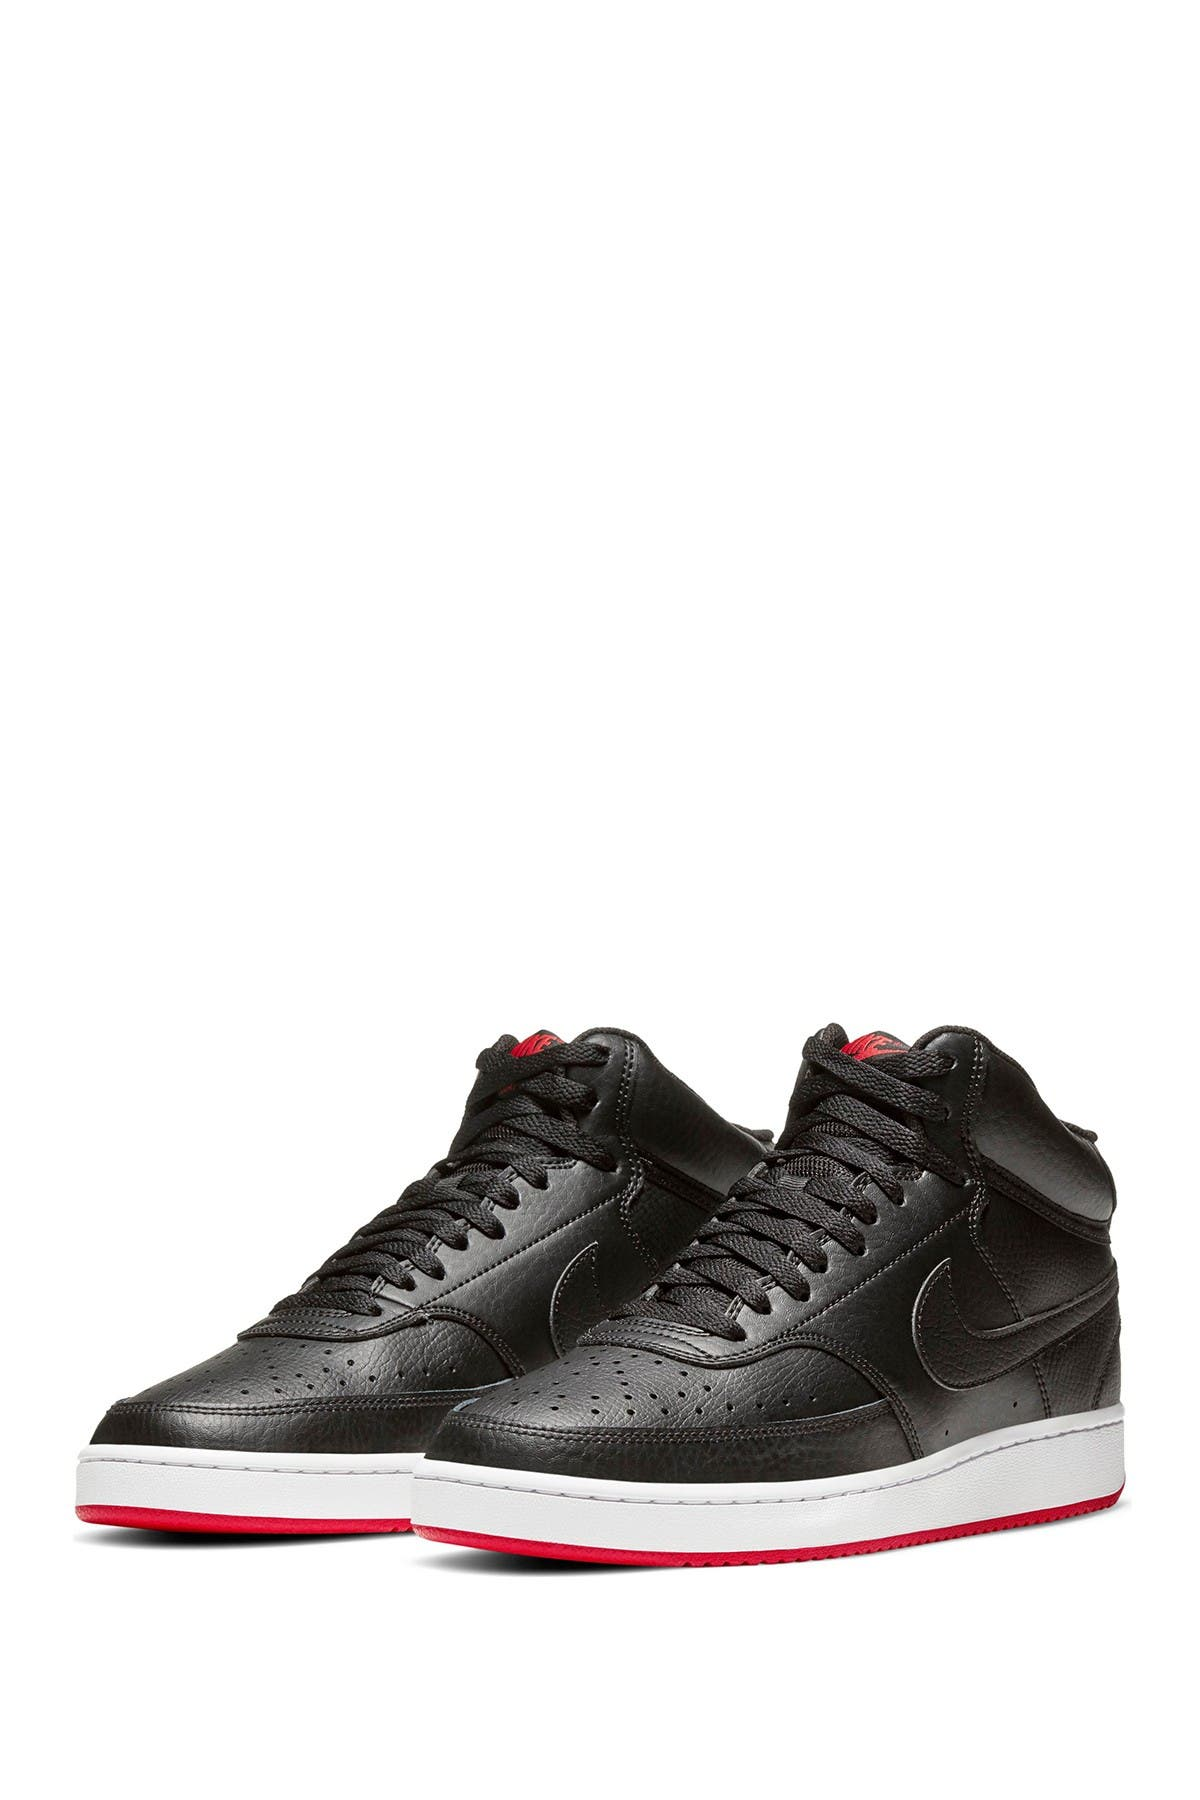 Image of Nike Court Royale Mid Sneaker